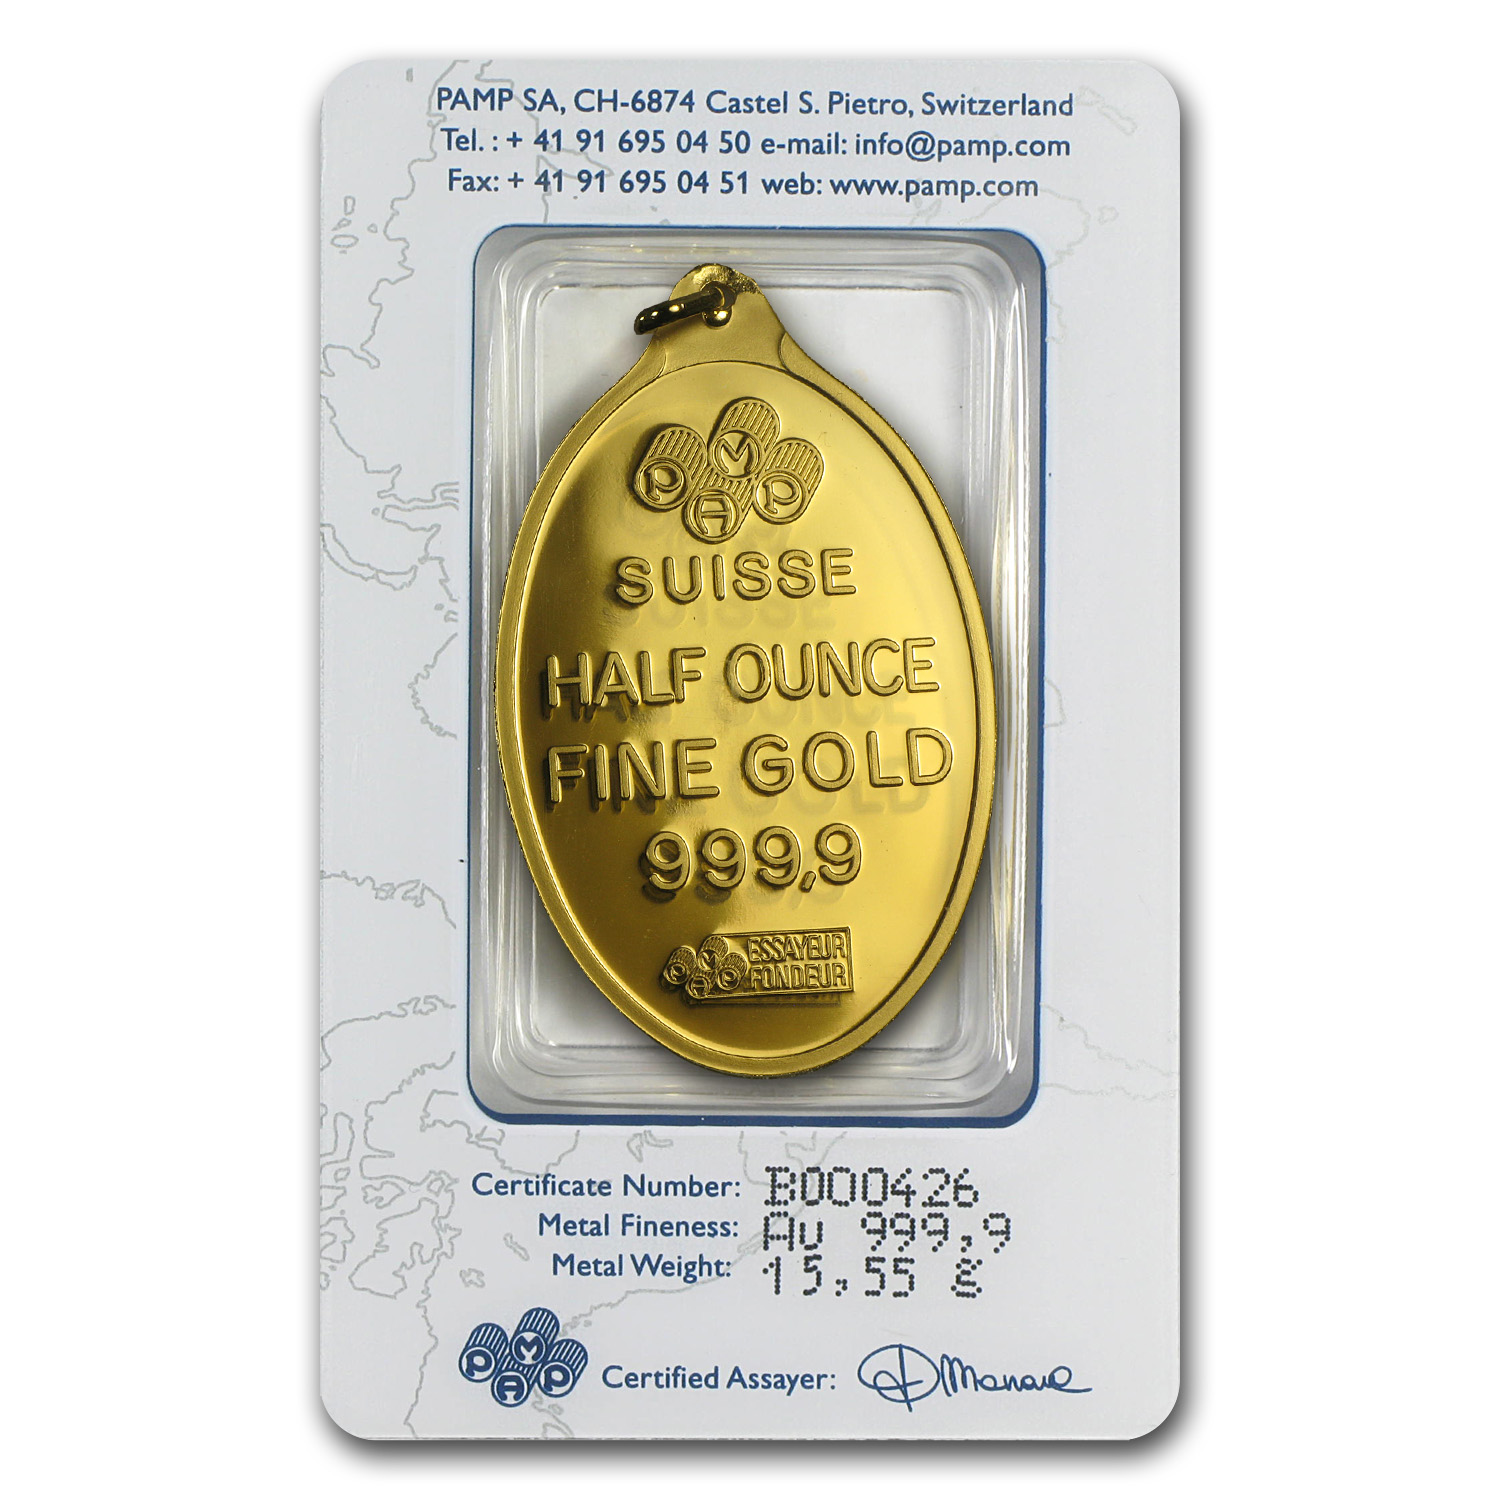 1/2 oz Gold Pendant - PAMP Suisse (Fortuna, Oval, w/Assay)